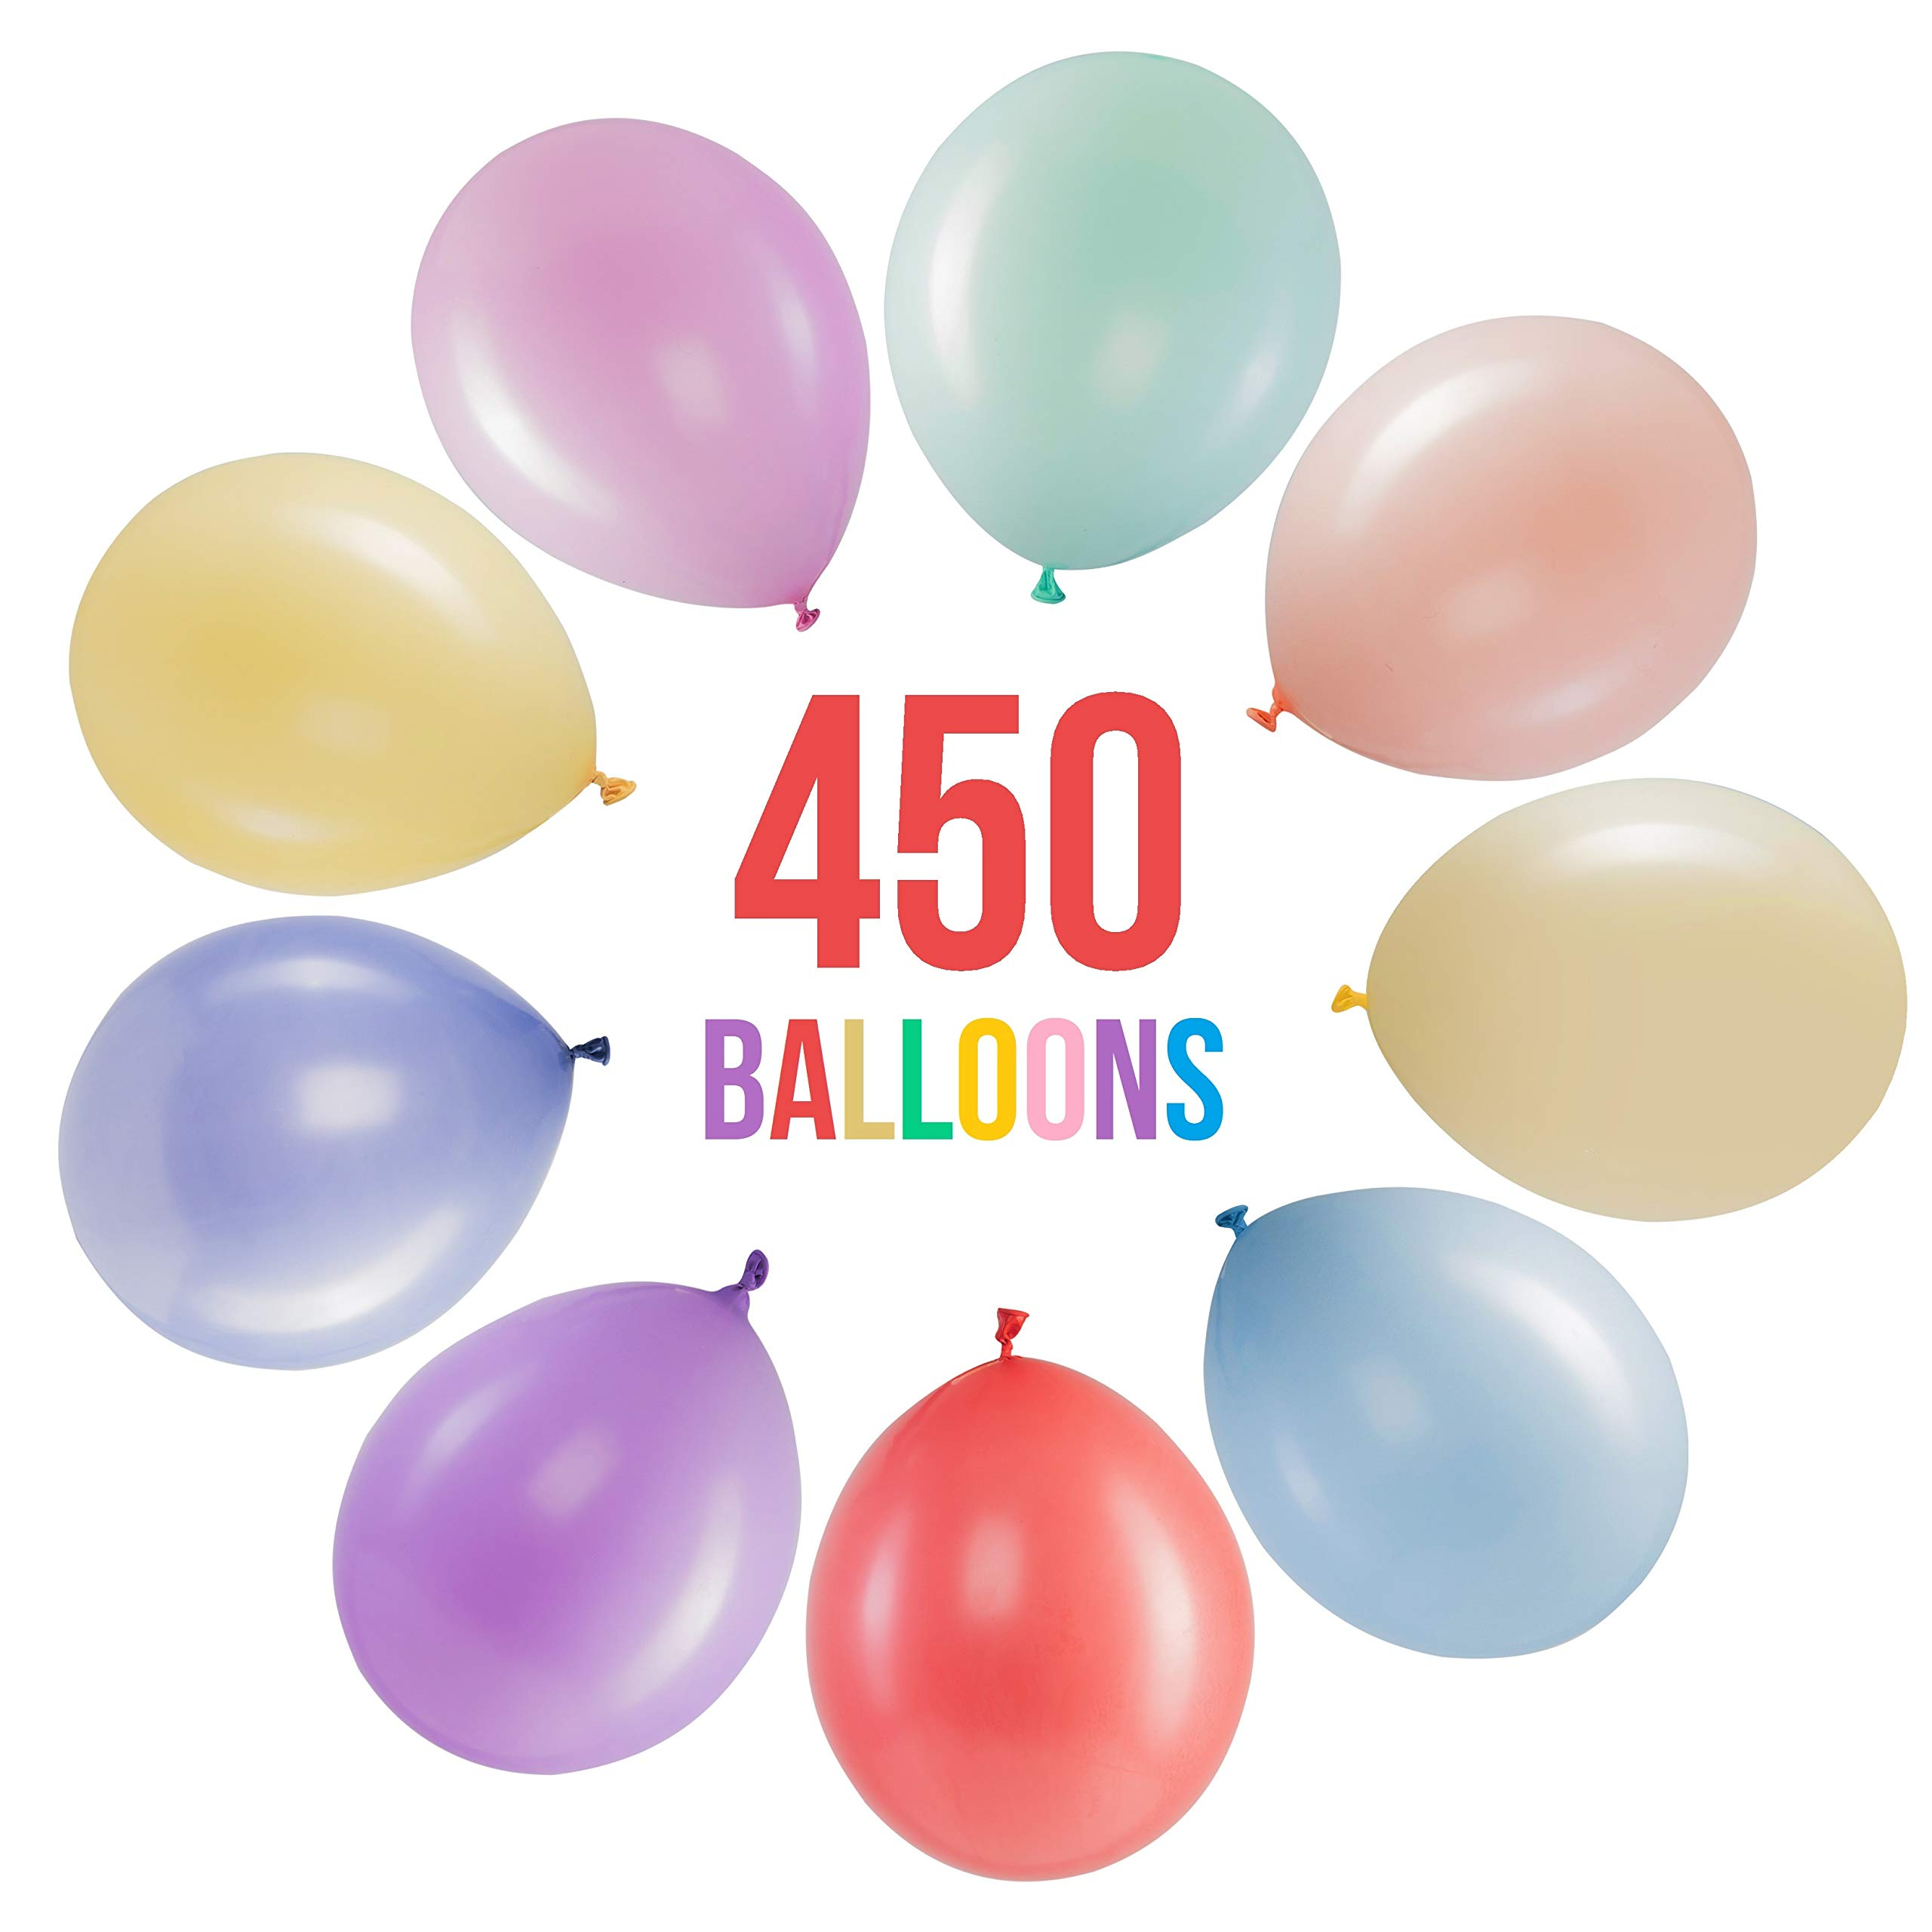 Prextex 450 Pastel Party Balloons 12 Inch 10 Assorted Rainbow Candy Colors - Bulk Pack of Strong Latex Macaron Balloons for Party Decorations, Birthday Parties Supplies or Arch Decor - Helium Quality